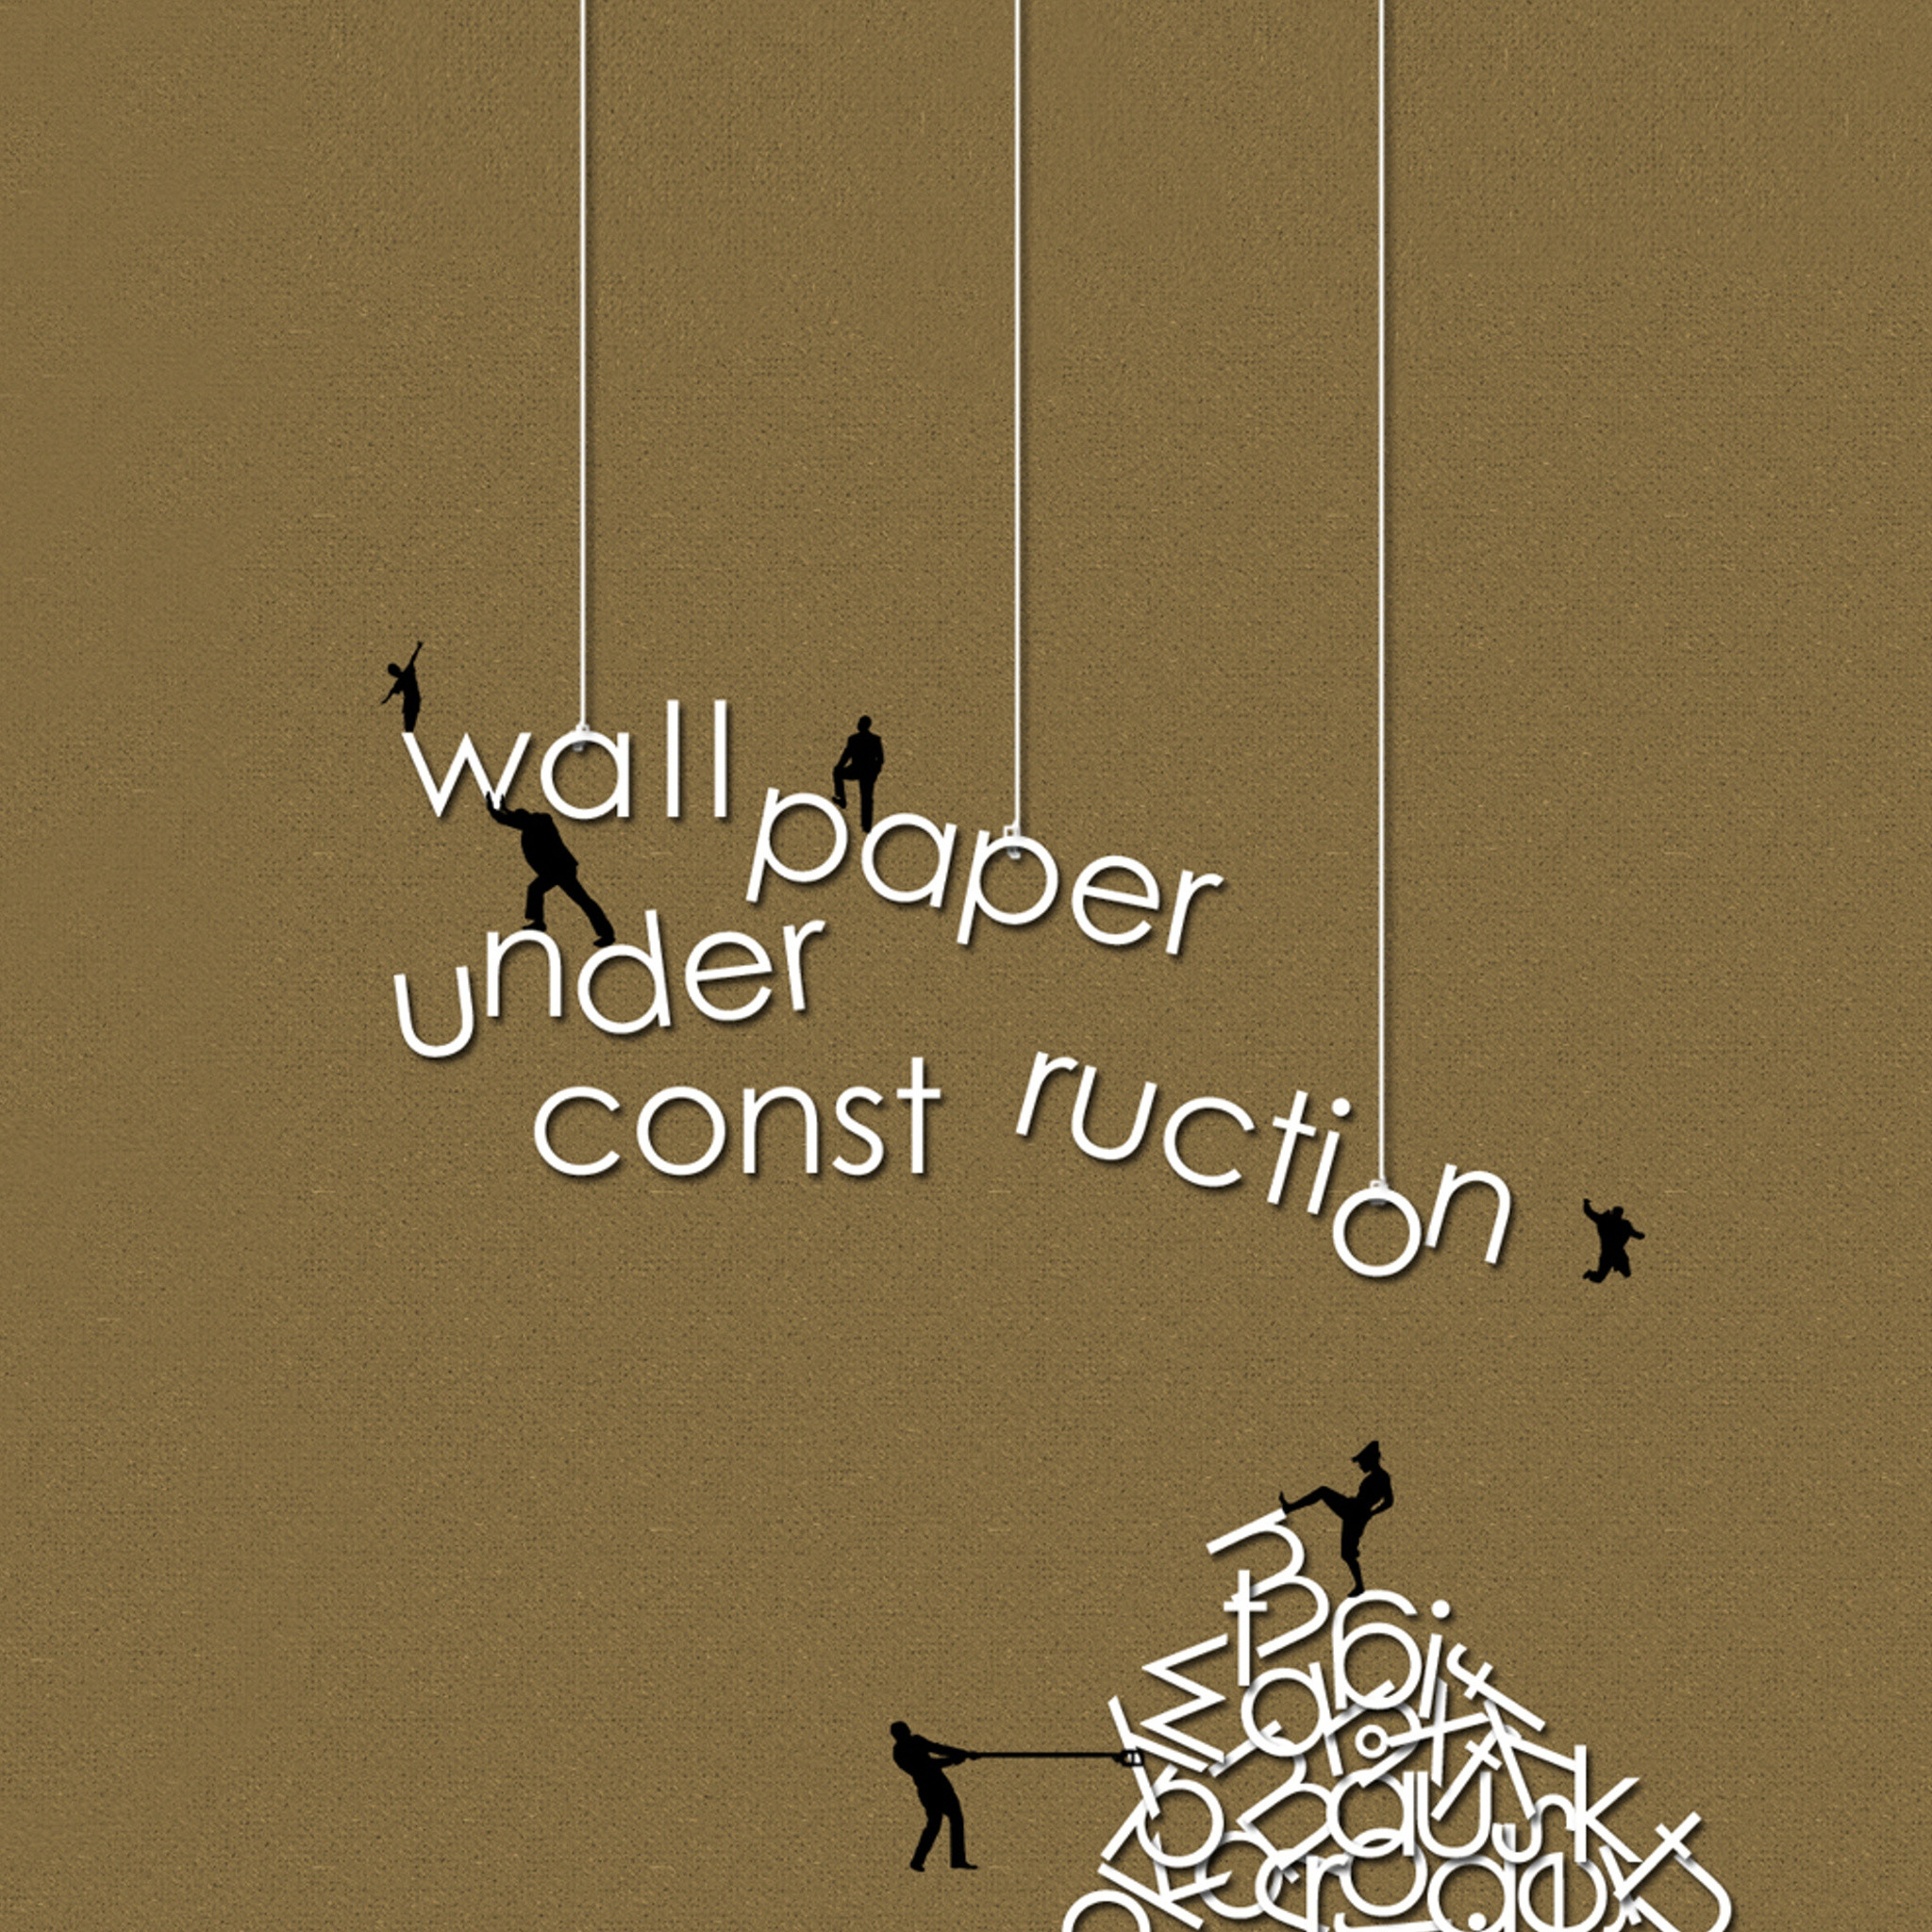 Wallpaper Saying Quotes: Funny Signs And Sayings Wallpapers (51+ Images